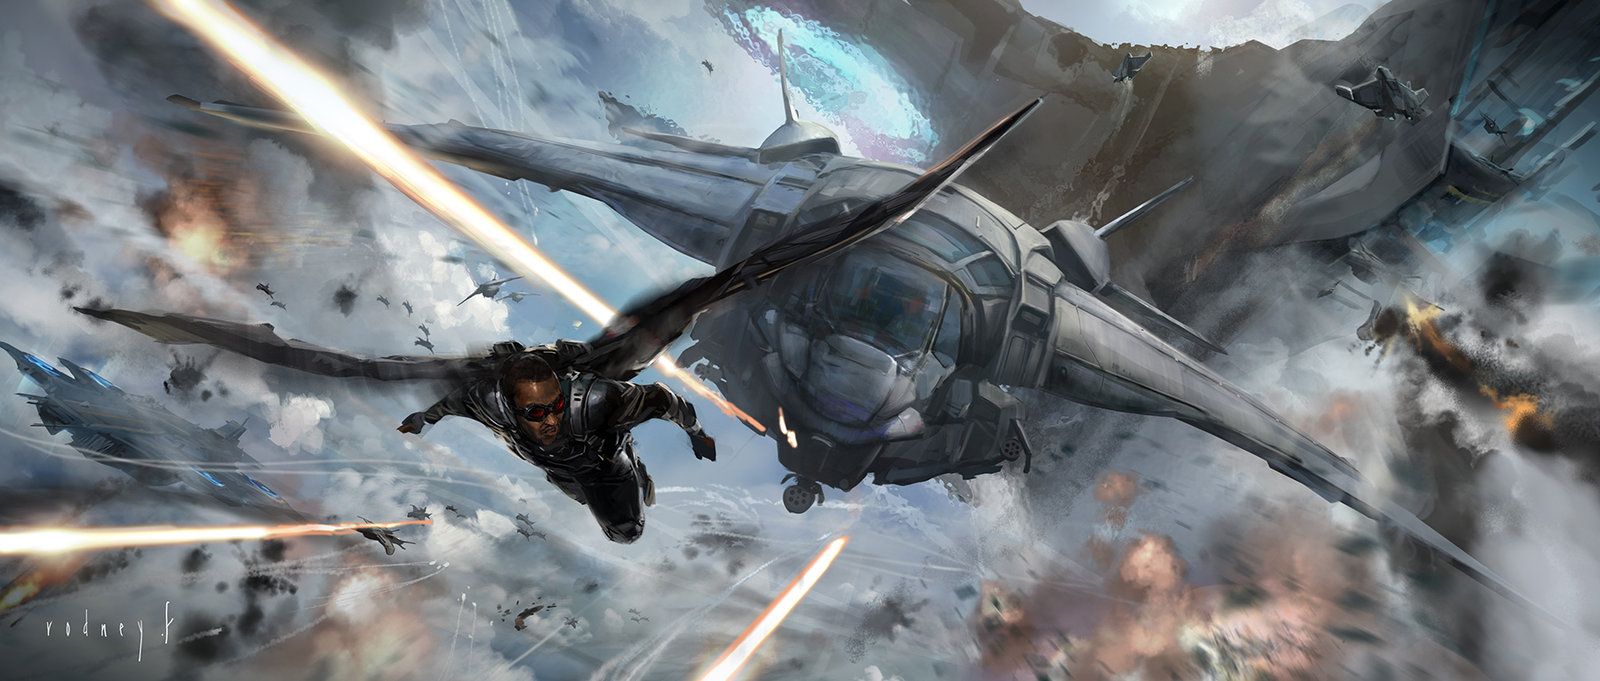 Key Frame Illustration - Marvel's Captain America The Winter Soldier 3